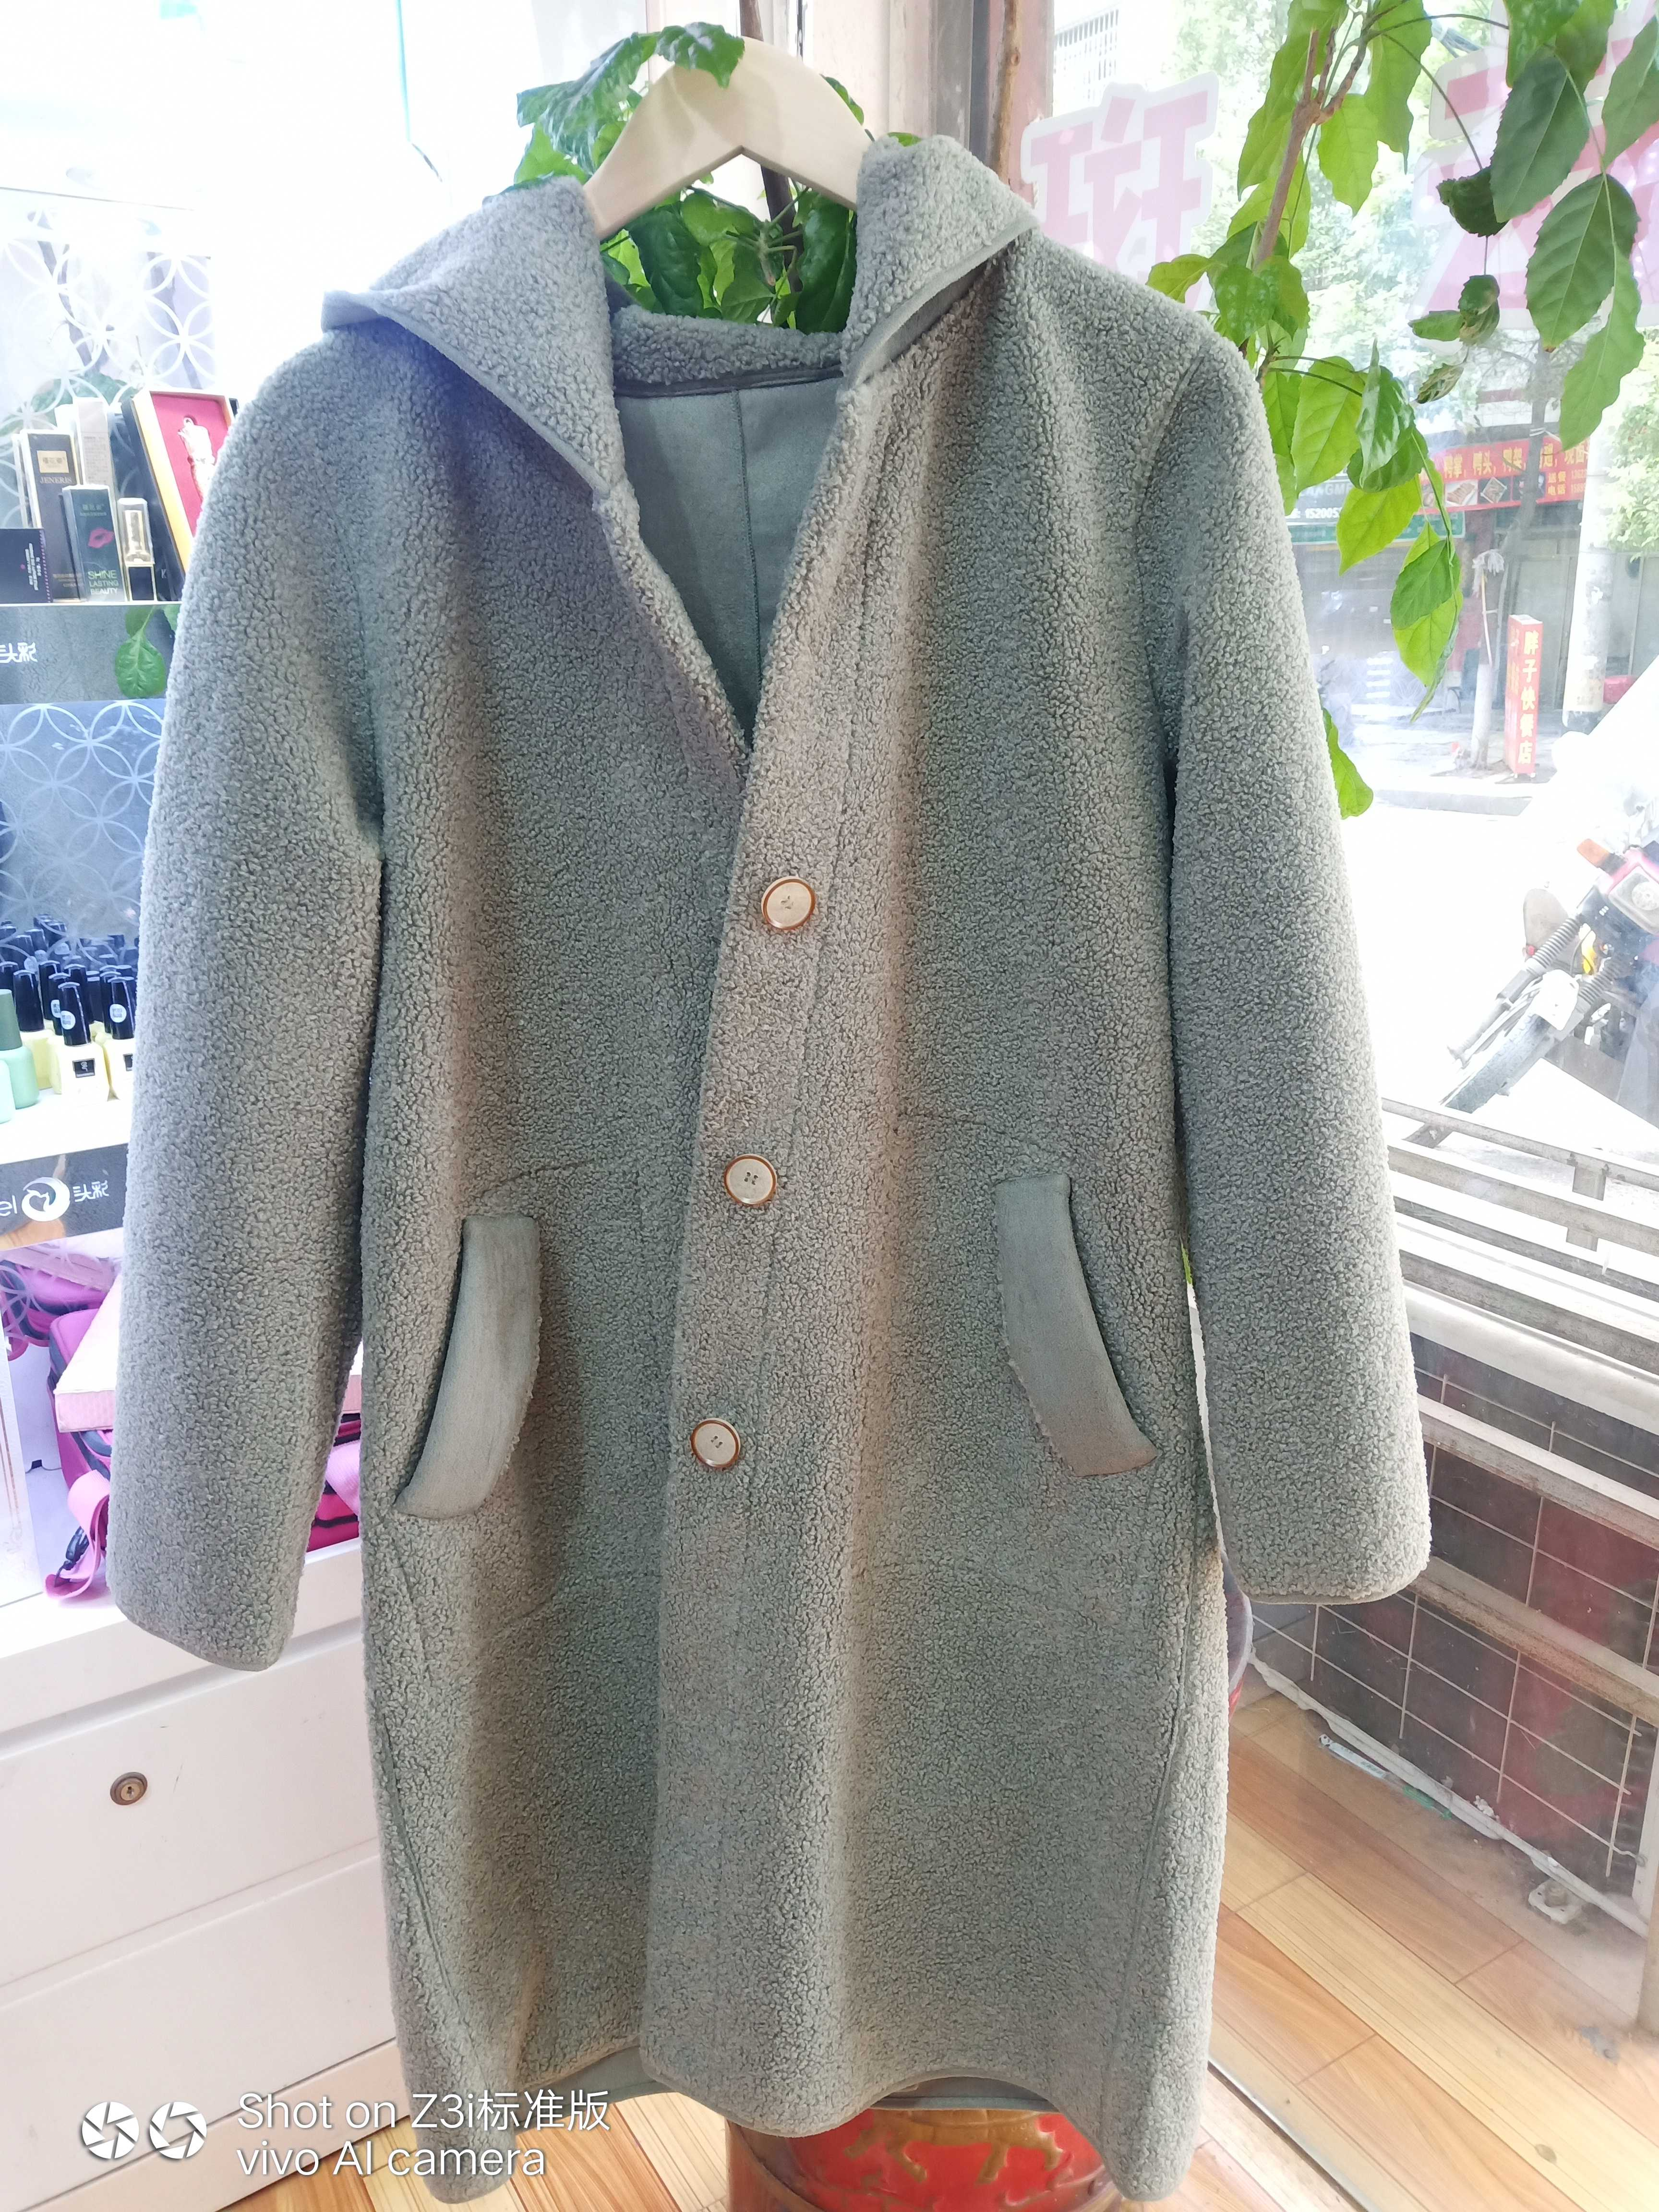 Genuine medium long coat on cloud sketching counter can be worn on two sides, lamb fur coat in one, turquoise green